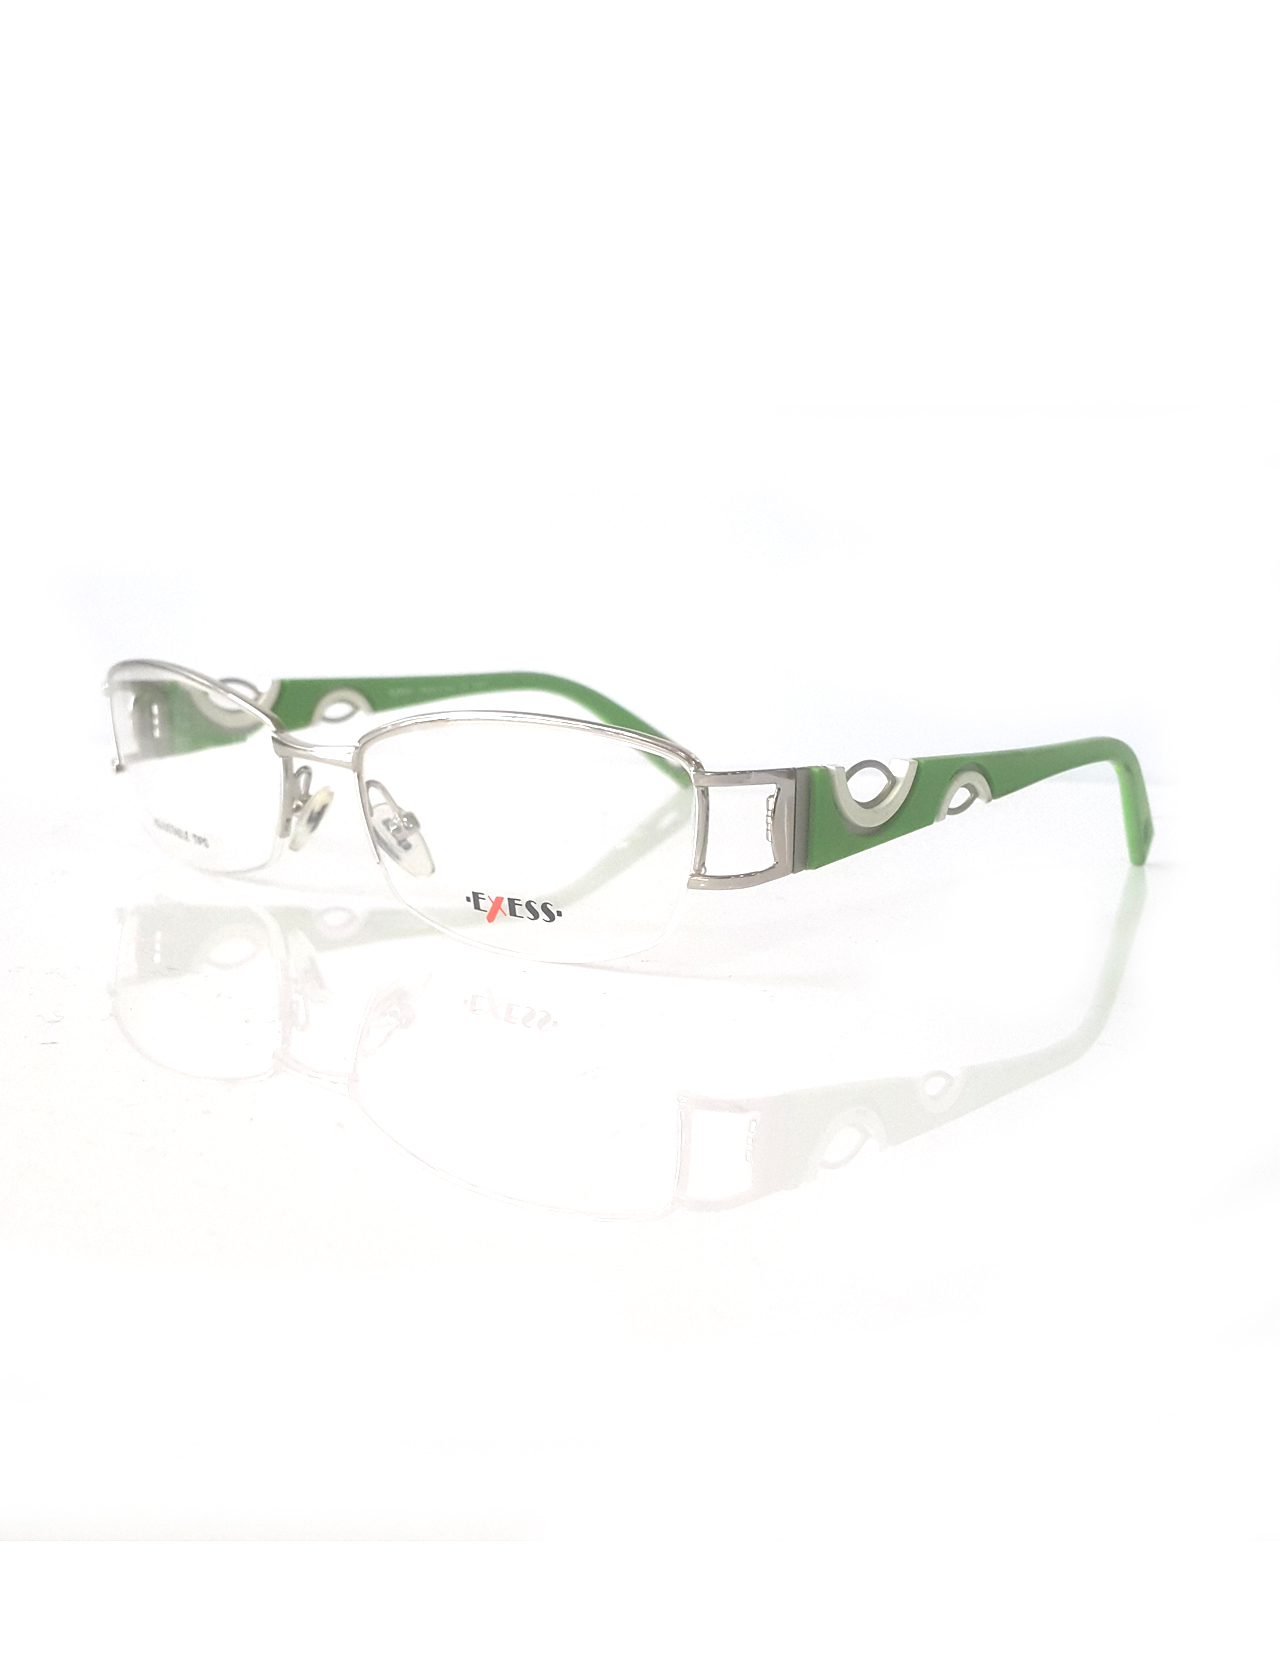 Markamilla Women Reading Glasses Frame Demo Glasses Eyewear Transparent High Quality WomenExess E 8002 154 53